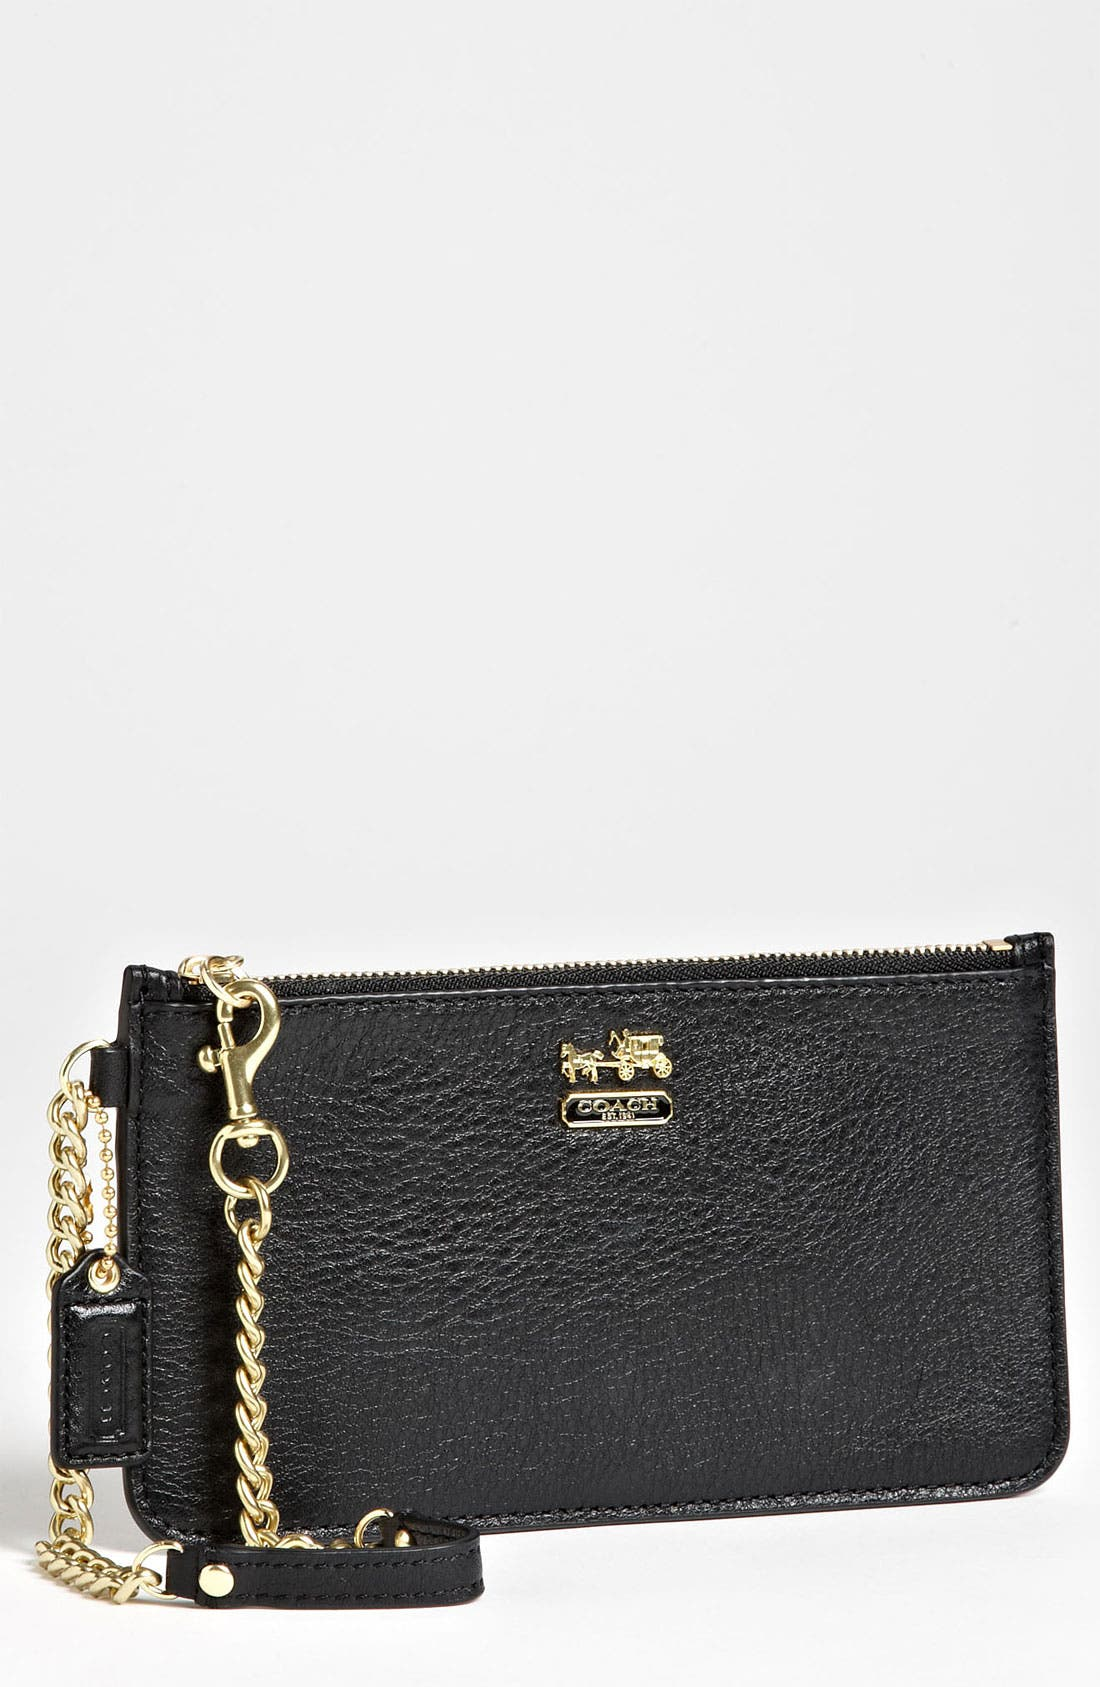 Alternate Image 1 Selected - COACH 'Madison' Leather Wristlet